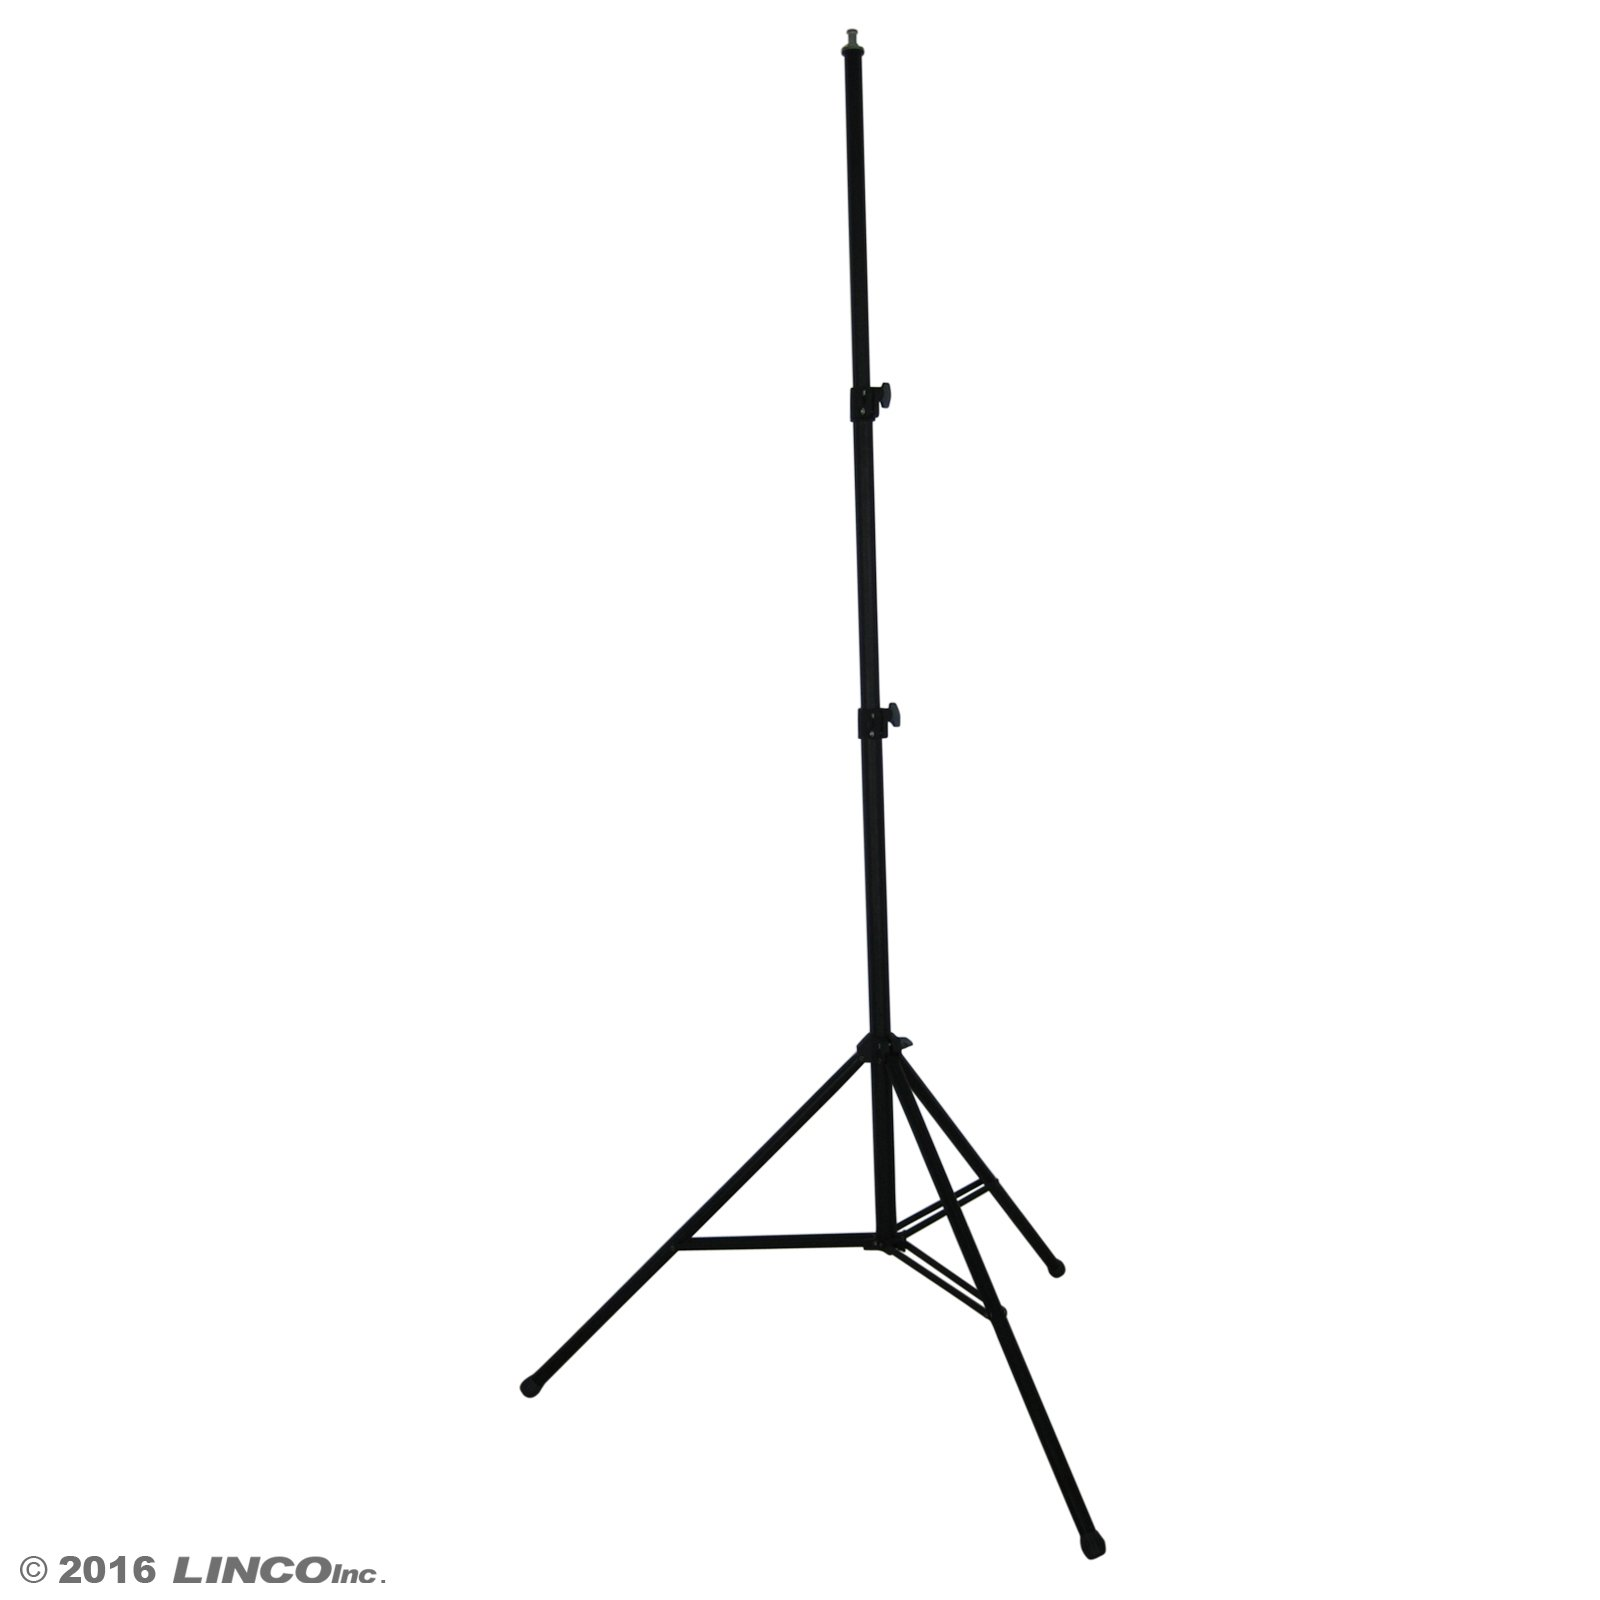 Linco Lincostore Zenith 9 feet Heavy Duty Light Stand for Photography Strobe Flash Lighting